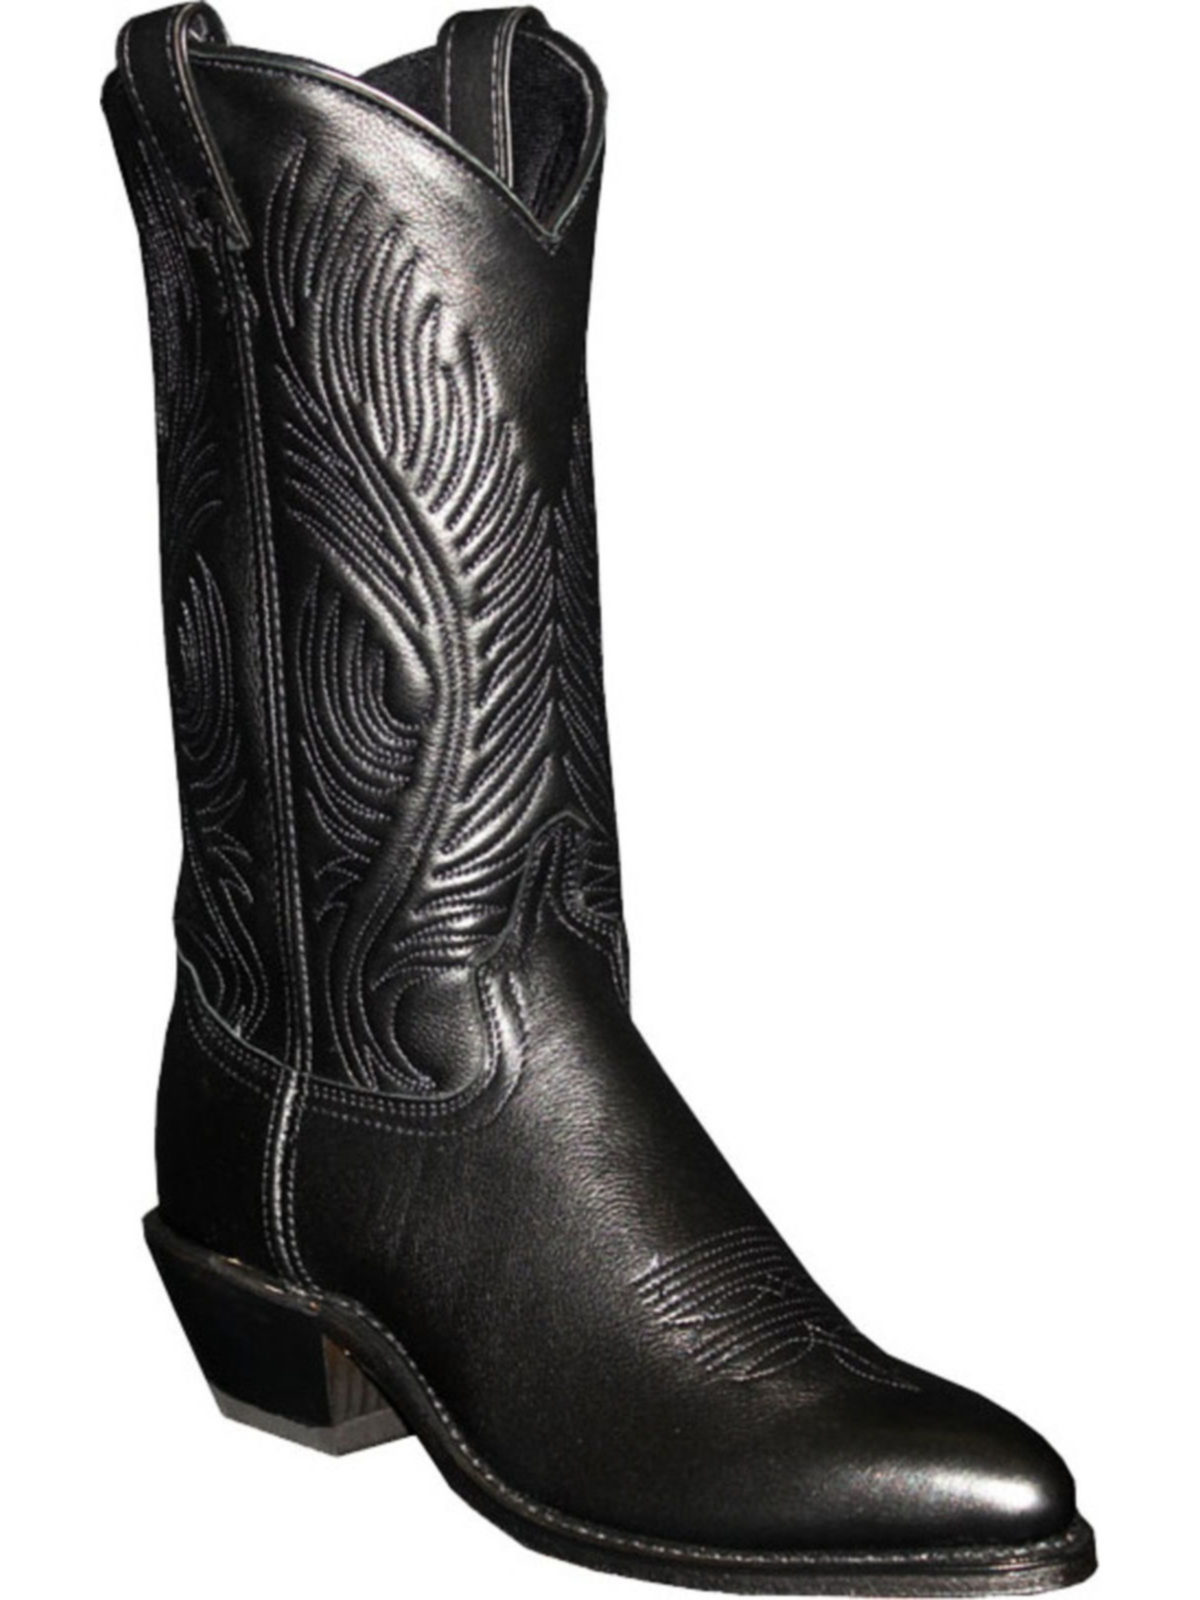 Ariat Boots For Kids Size 5